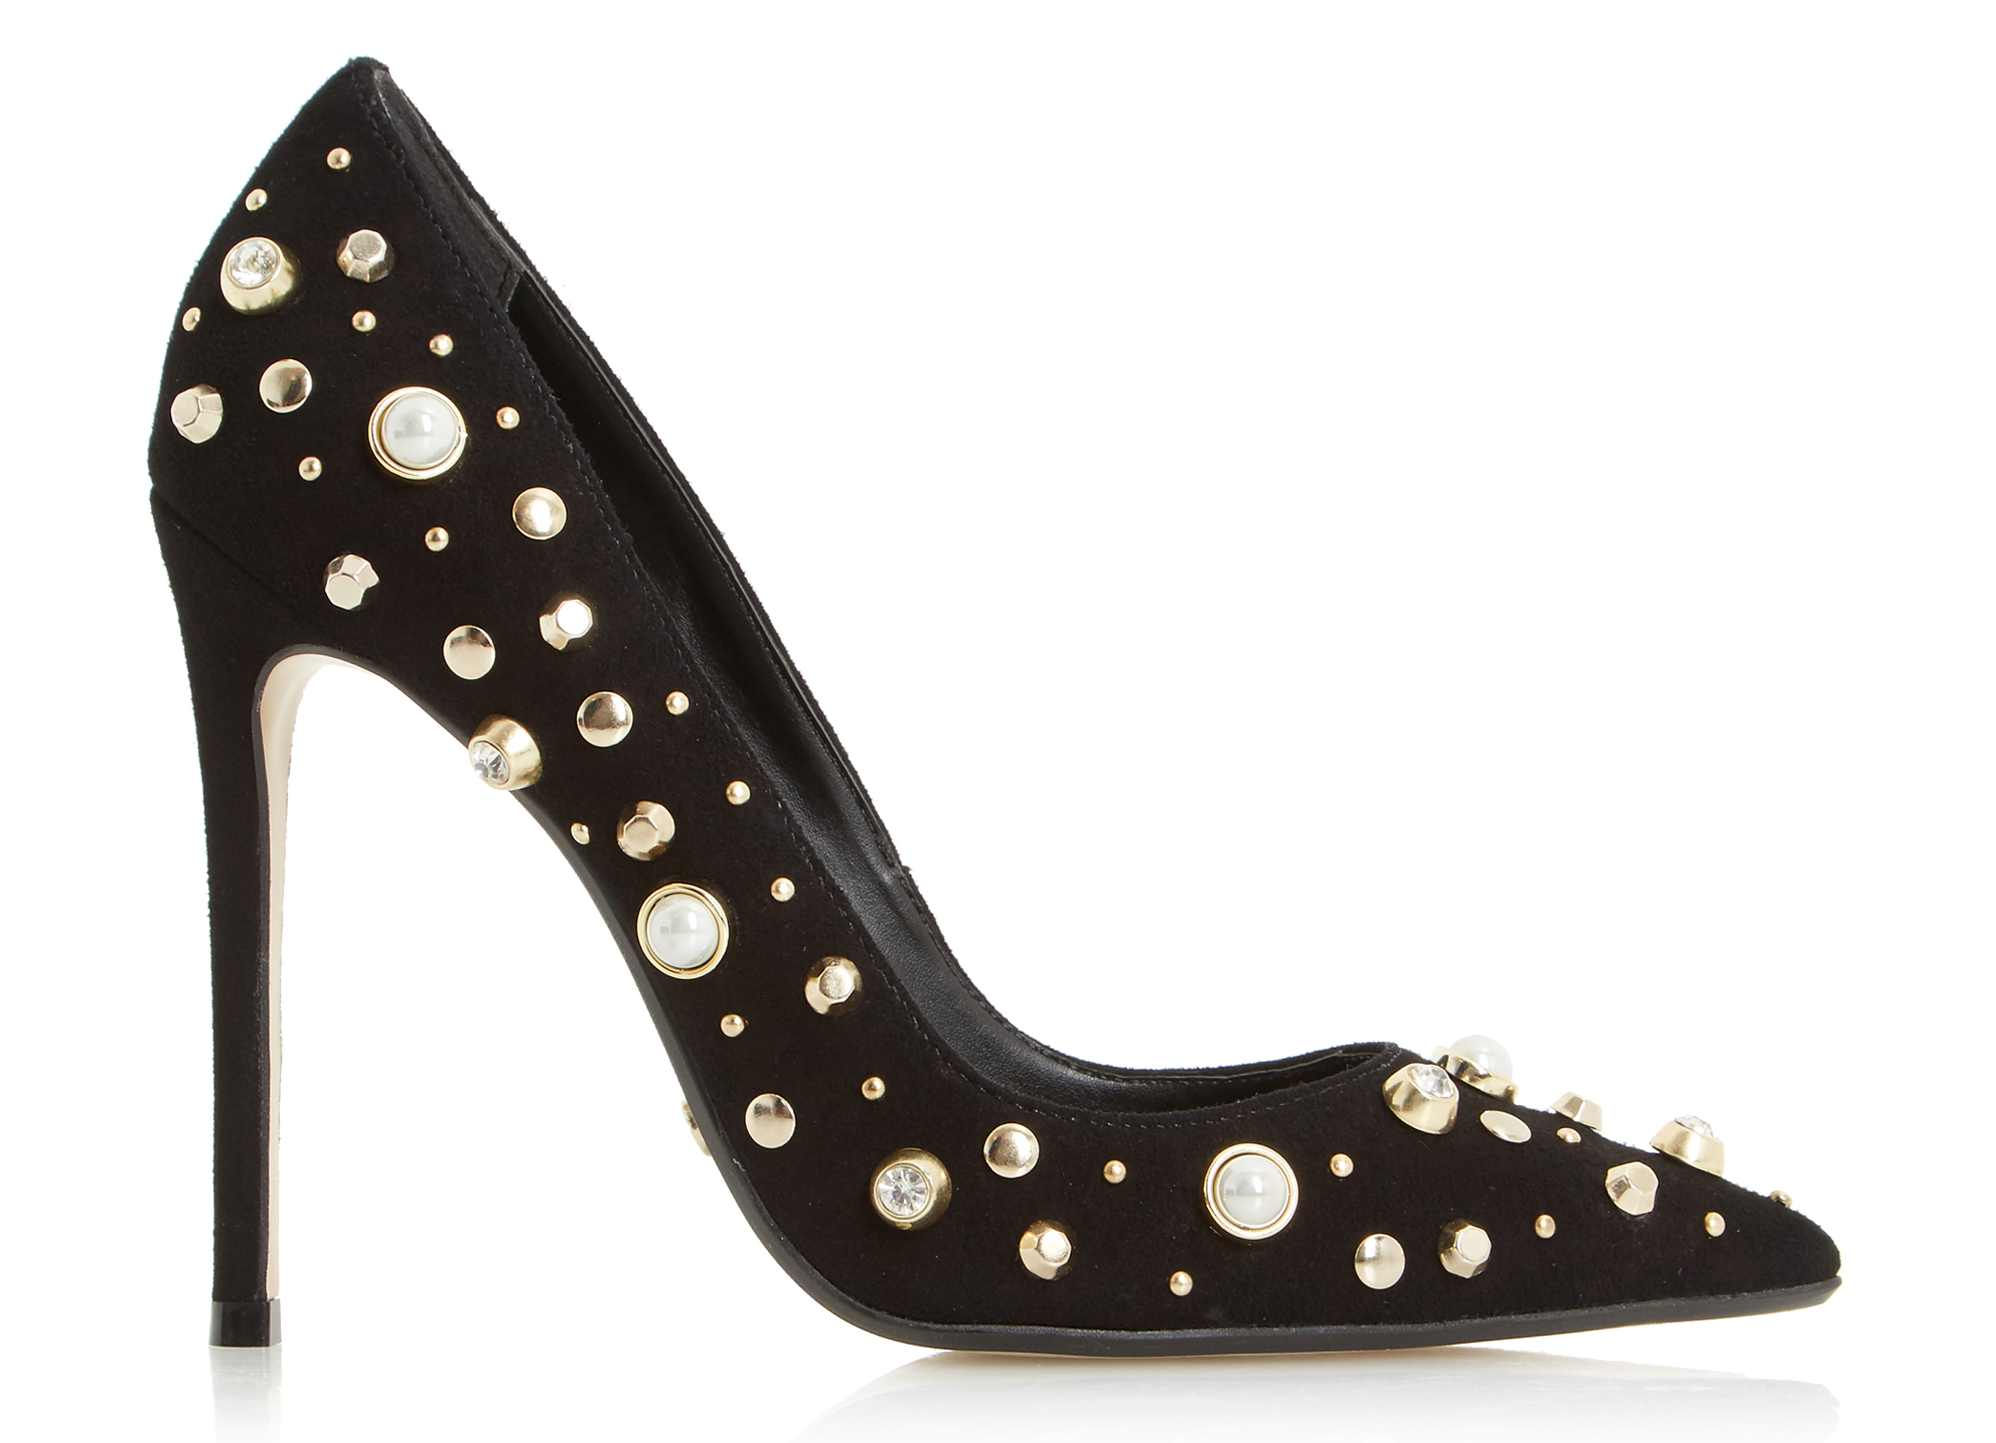 Dune Bertta Black Pearl Studded Court Shoes